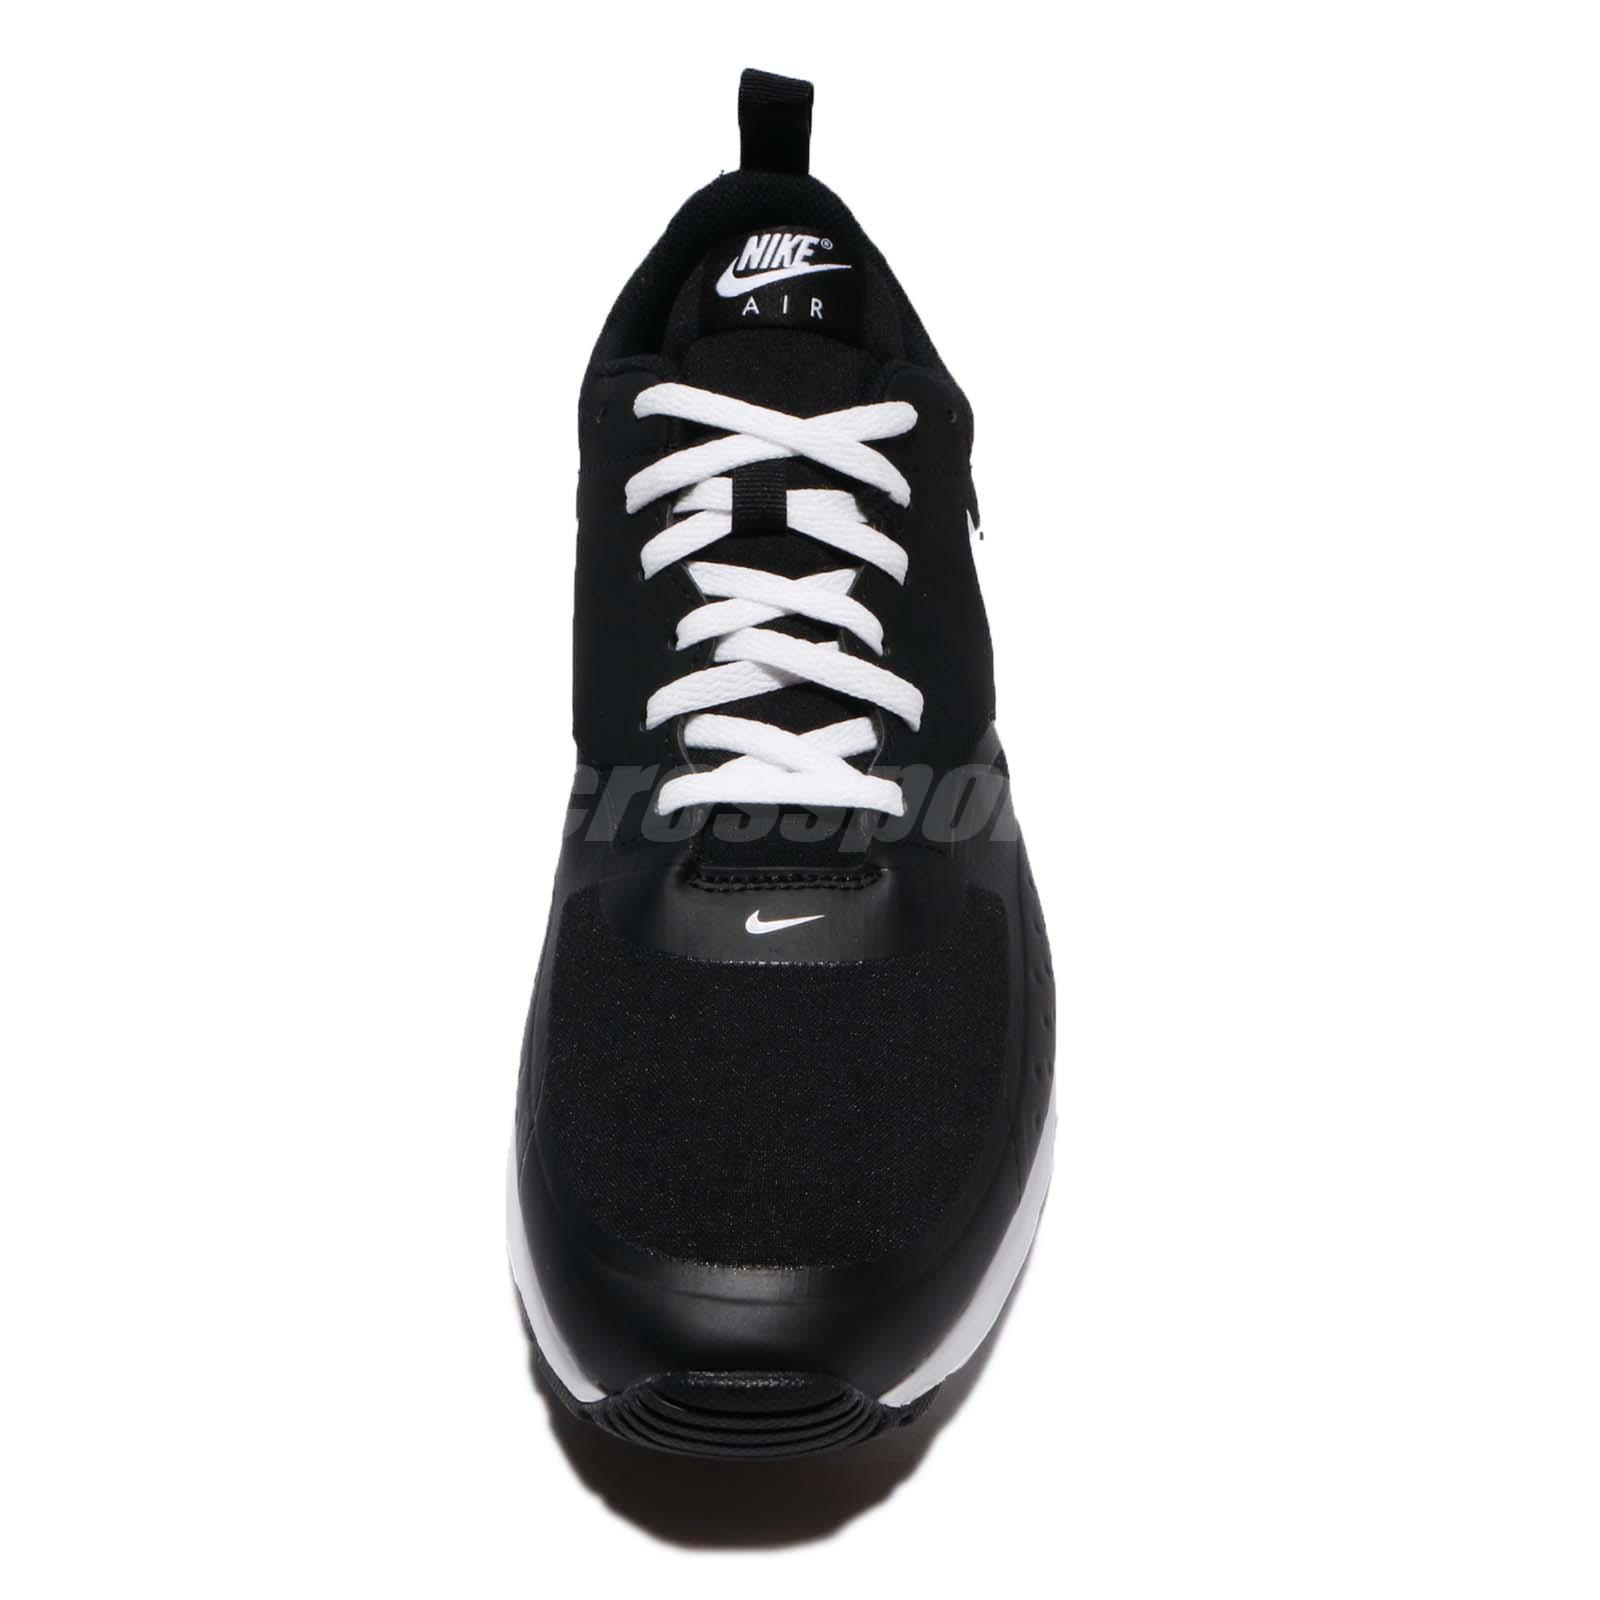 buy online e8b2e 1fb7f Nike Air Max Vision Black White Men Running Shoes Sneakers Trainers ...